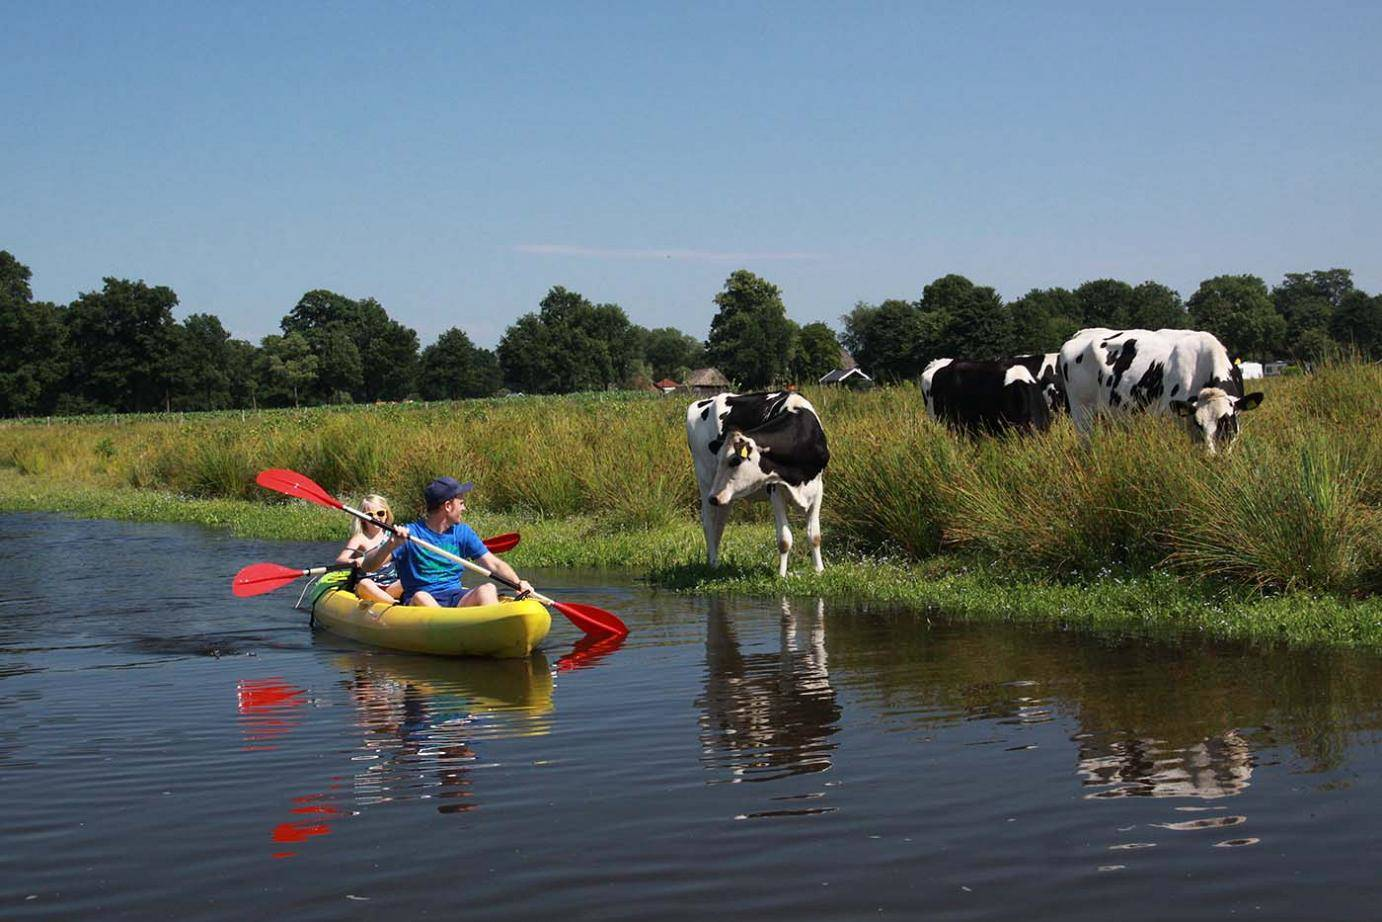 Explore the Netherlands countryside